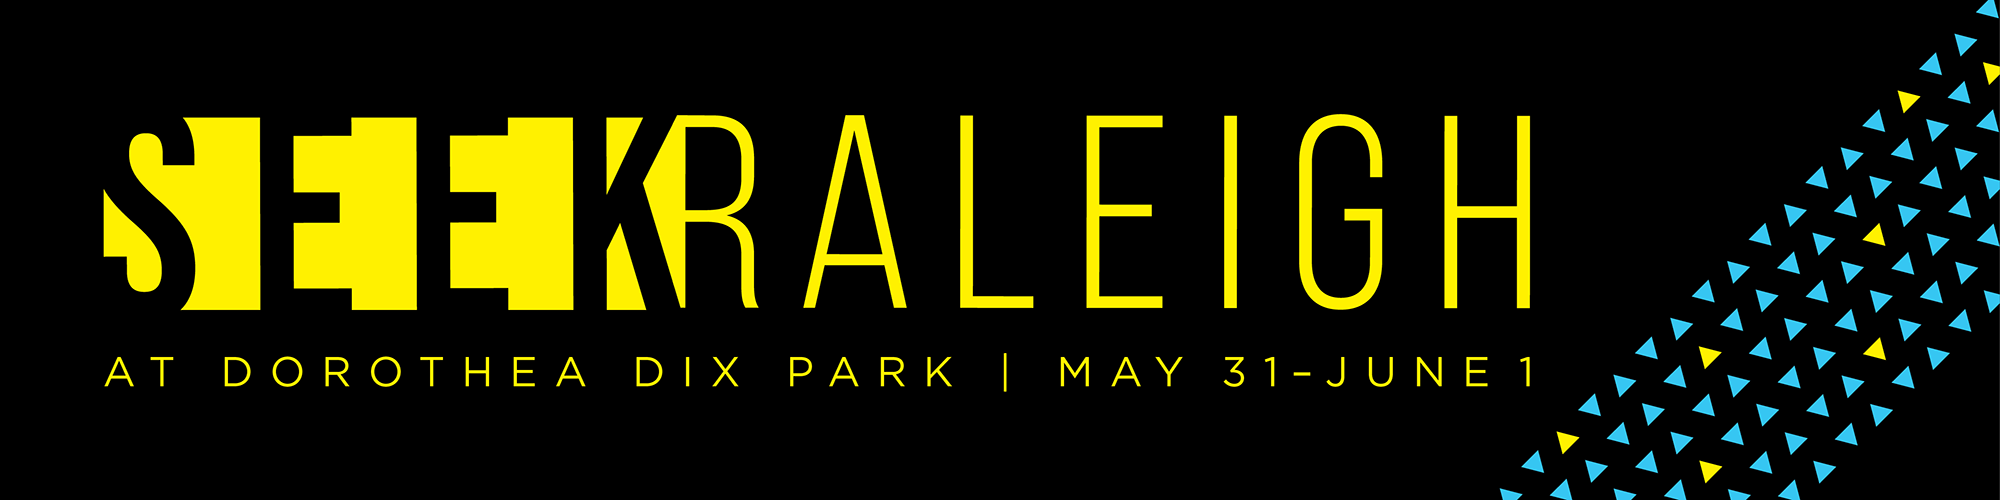 SEEK Raleigh at Dorothea Dix Park | May 31 - June 1